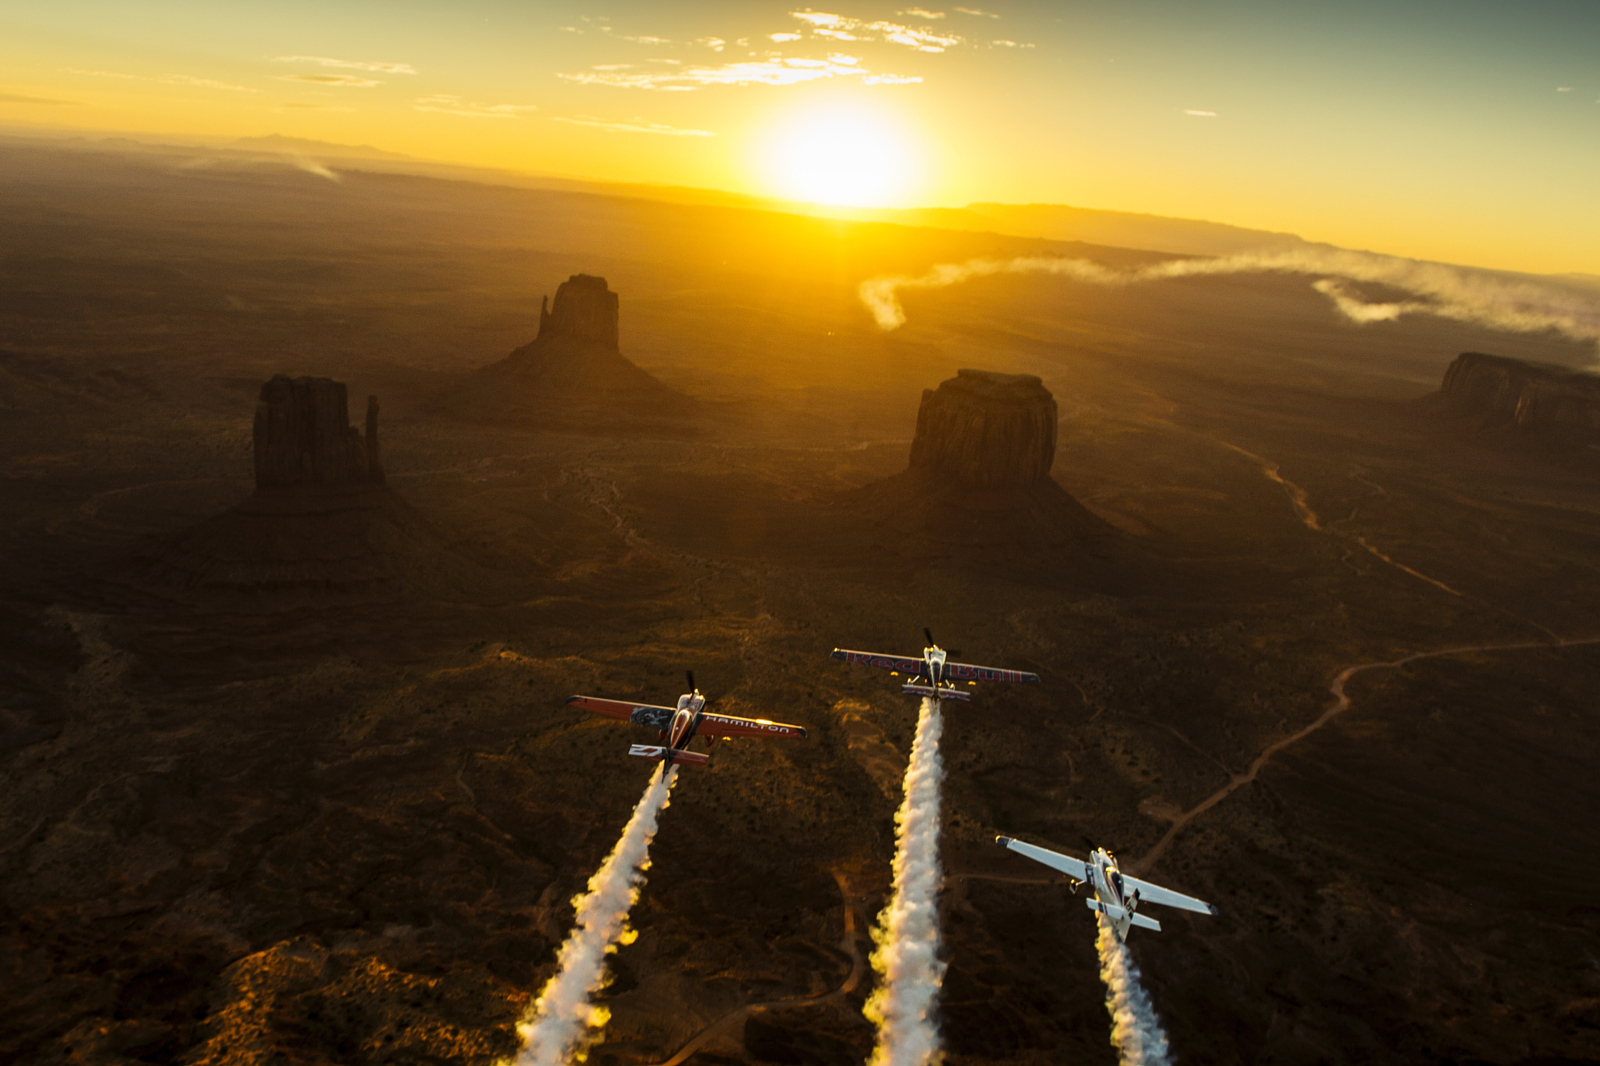 Pilots Fly Over Monument Valley in Epic Sunset Photo